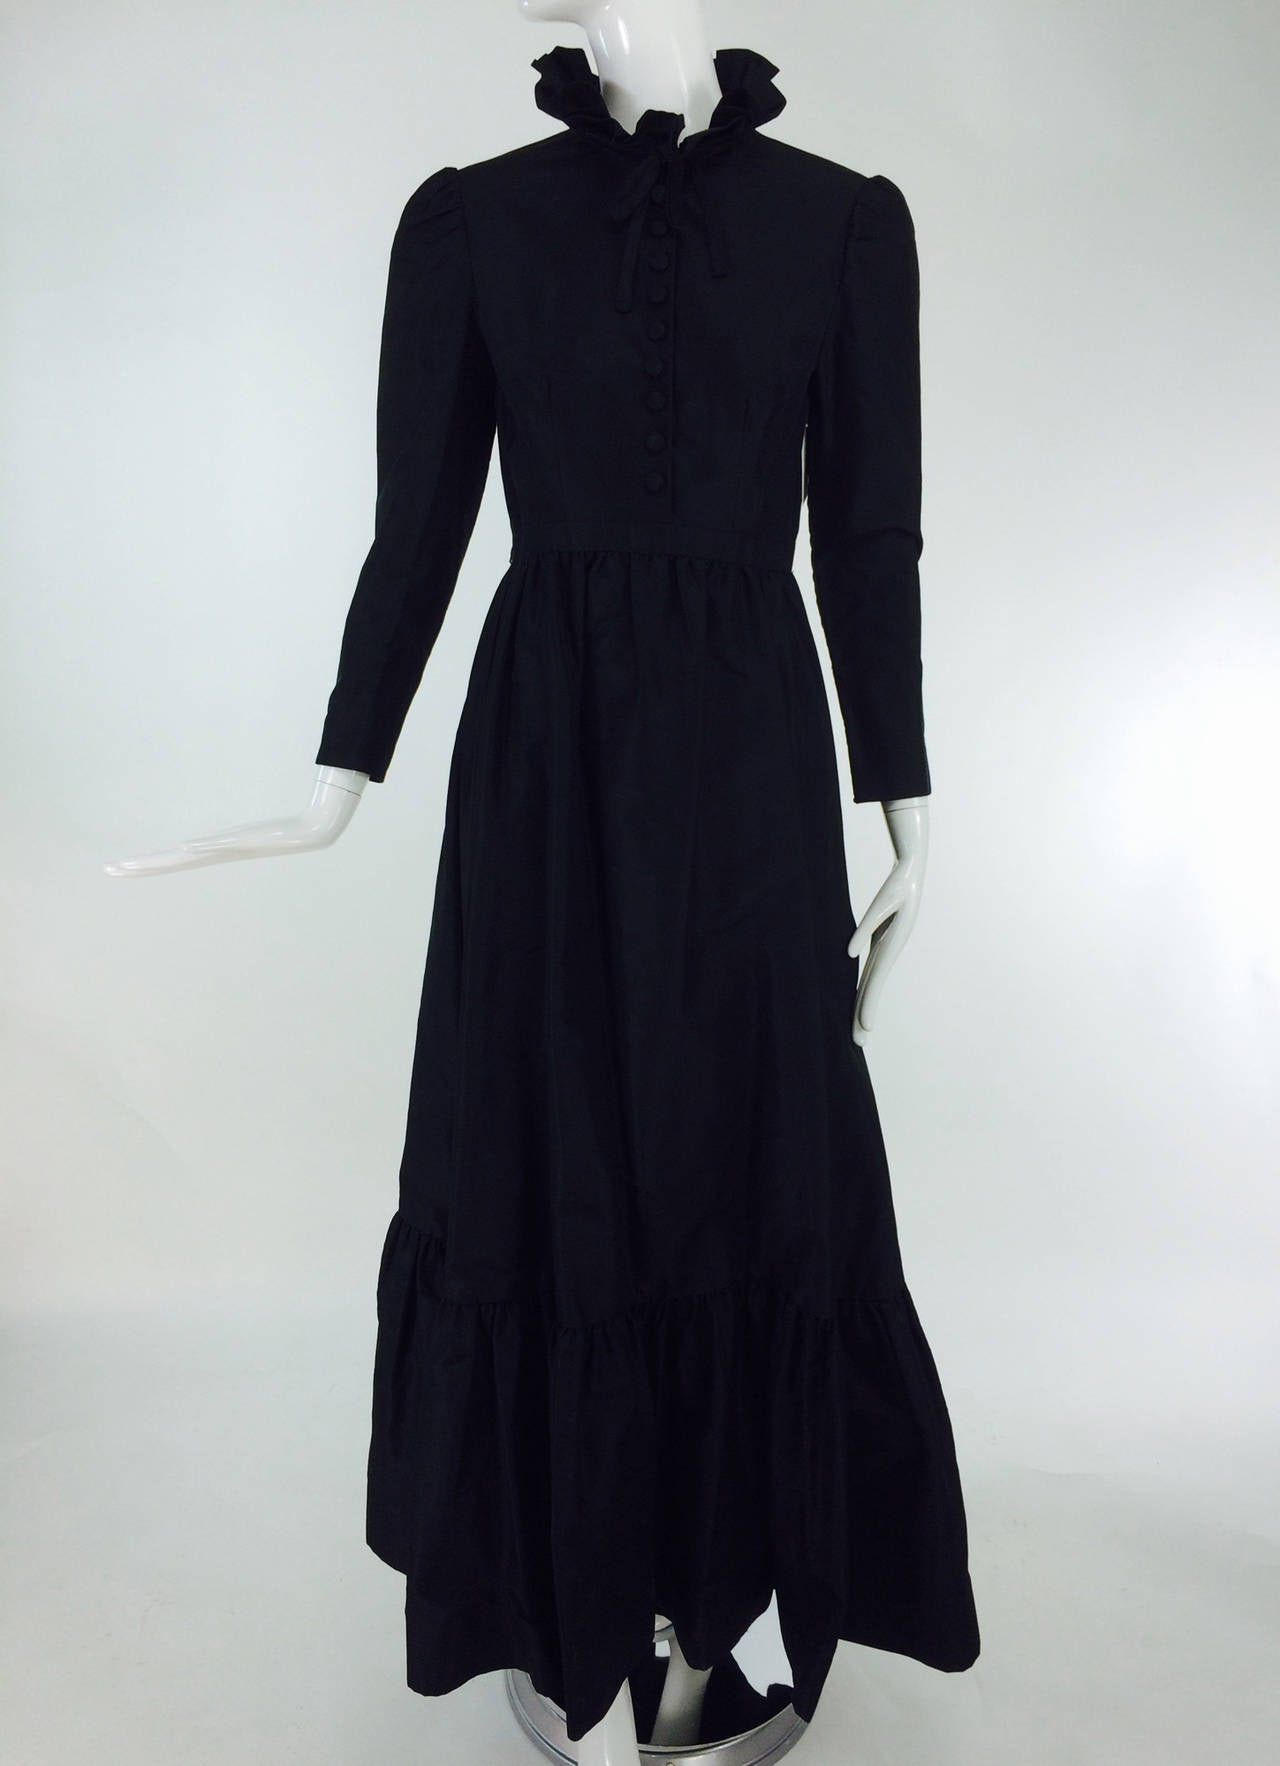 Shannon Rodgers for Jerry Silverman black Victorian style gown 1960s 8